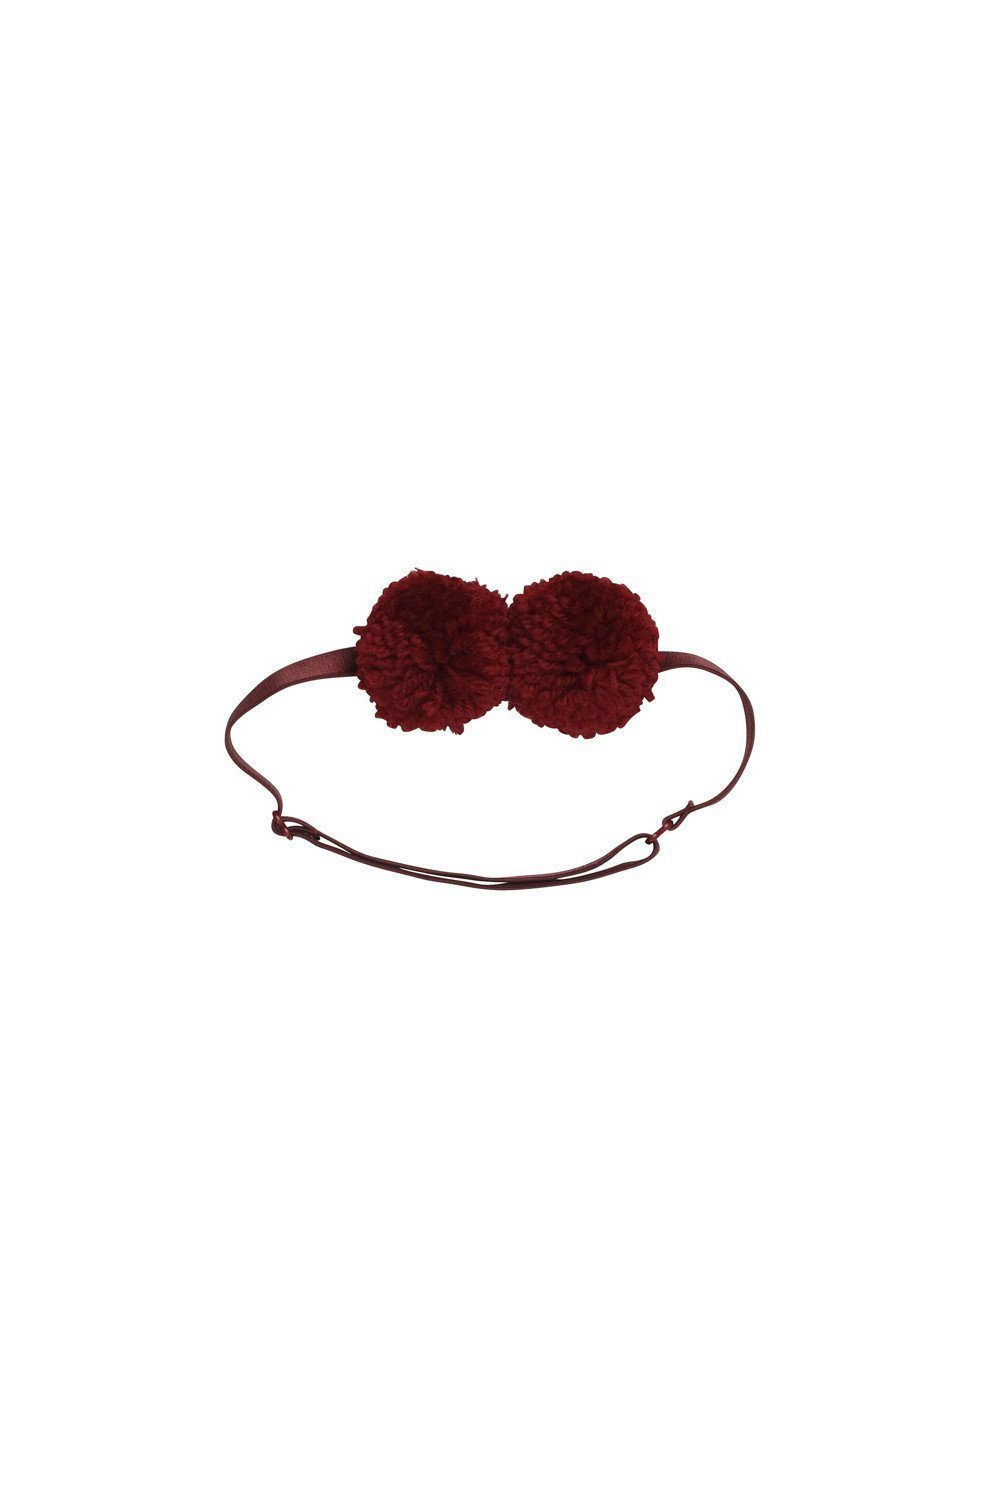 Yarn Pom Pom Baby - Burgundy - PROJECT 6, modest fashion